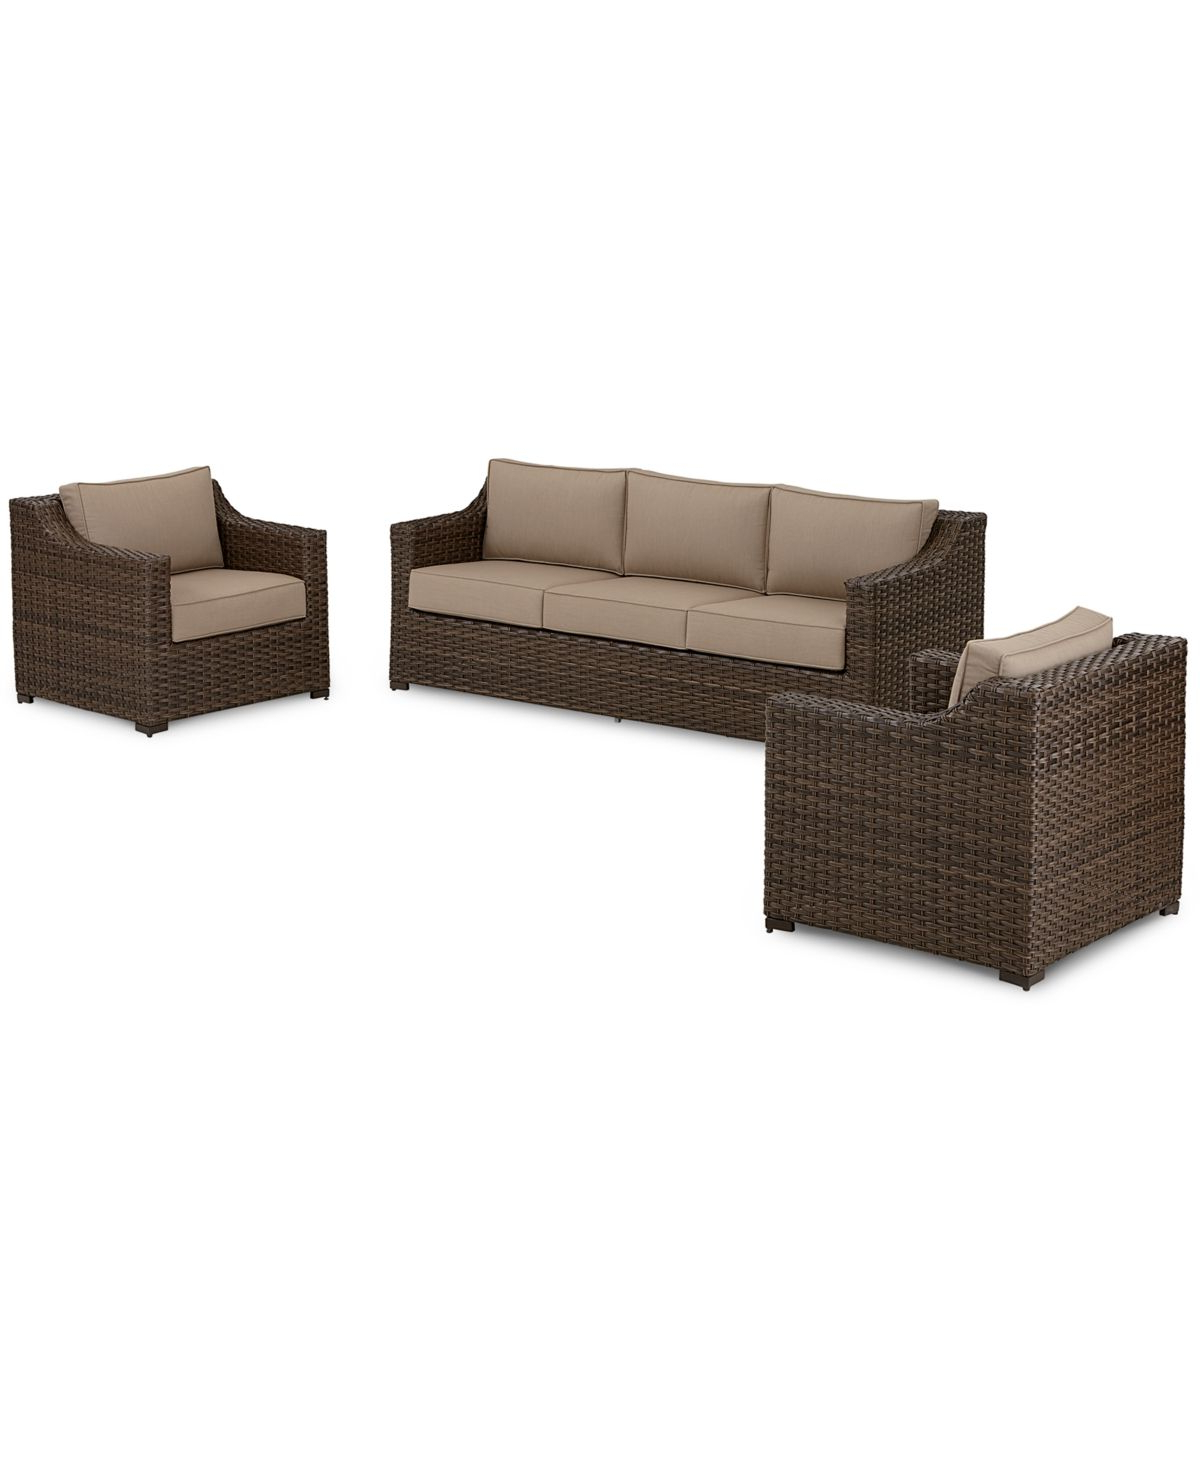 Well Liked Eldora Patio Sectionals With Cushions Inside Camden Outdoor Wicker 3 Pc (View 18 of 25)